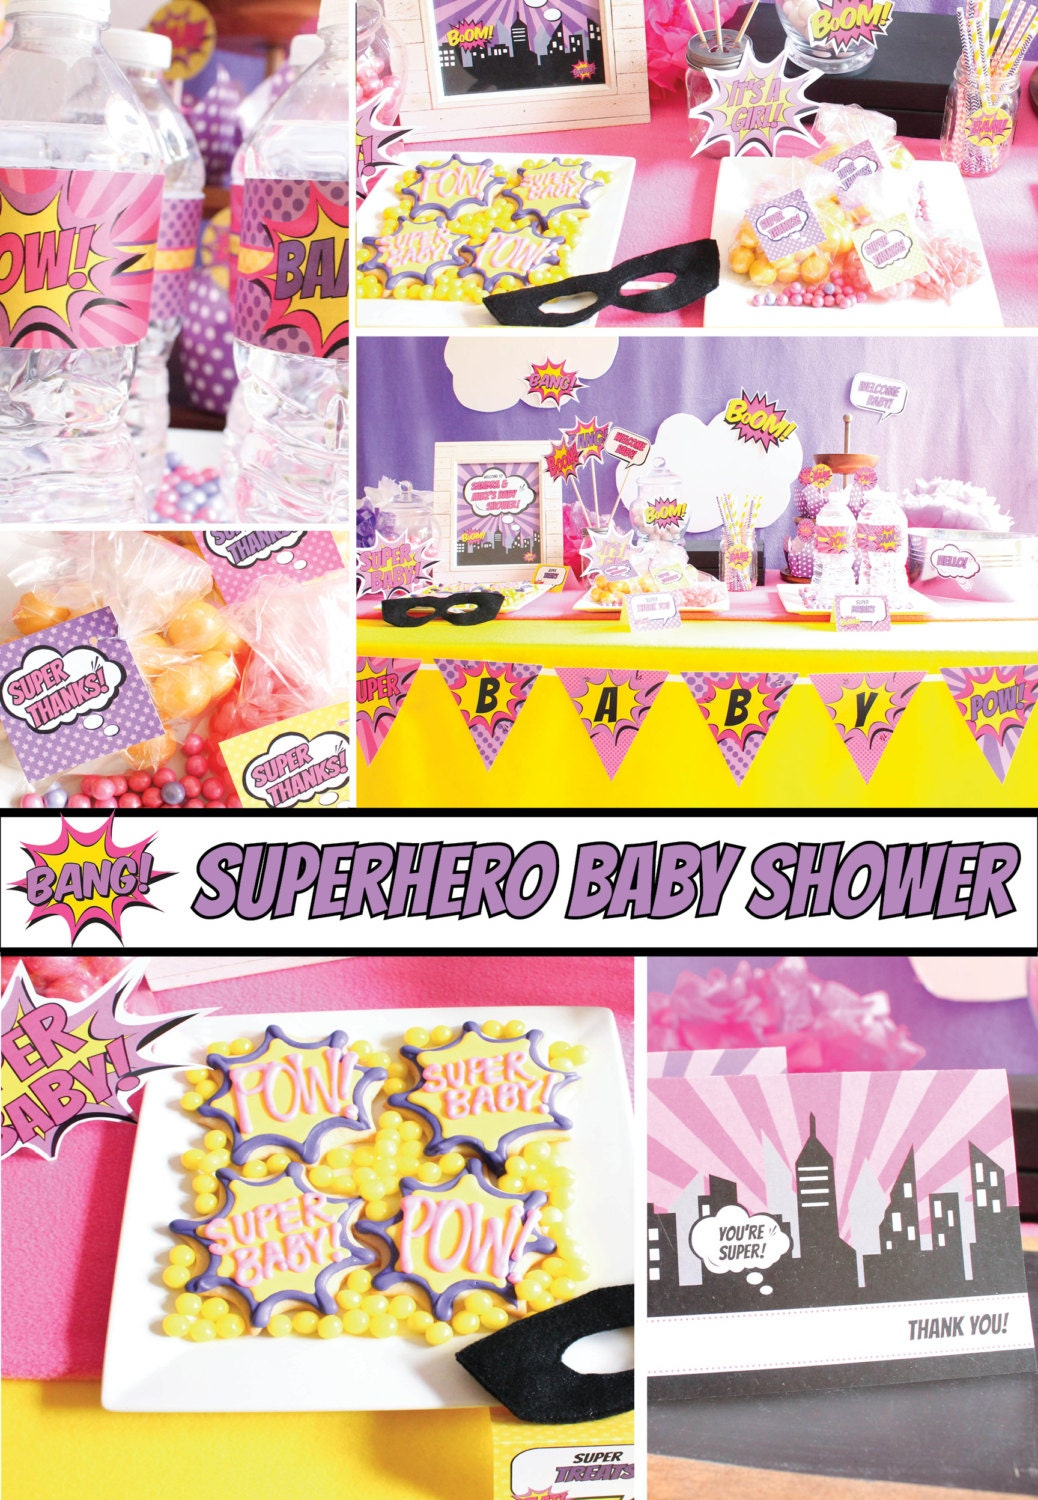 Baby Shower Decoration Packages : Girl superhero baby shower decorations package scarlett bc